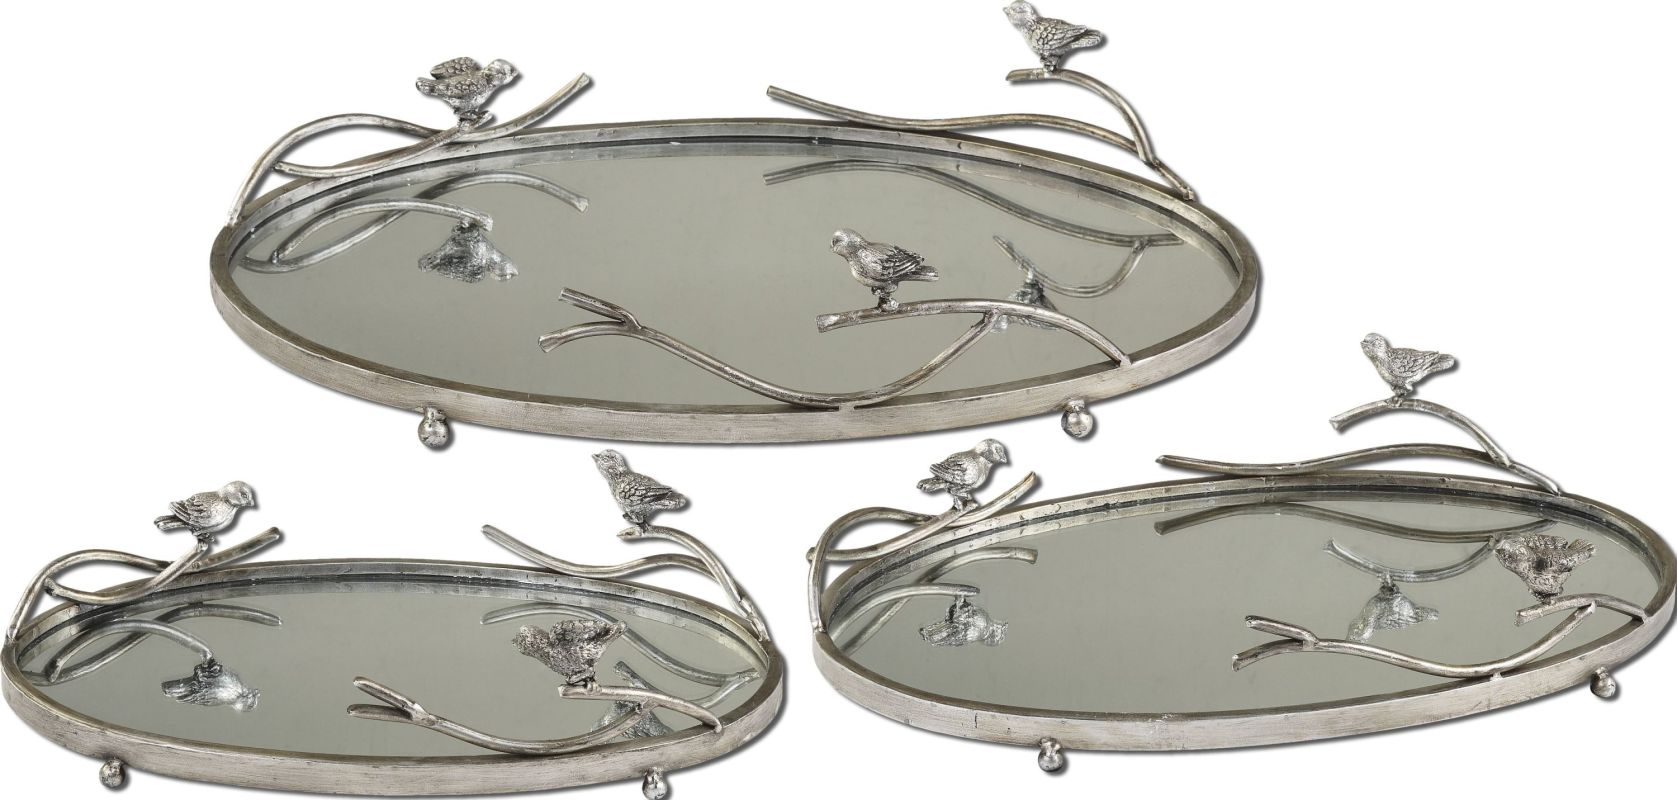 Uttermost 19710 Birds On A Limb Trays Antique Silver Leaf Home Decor